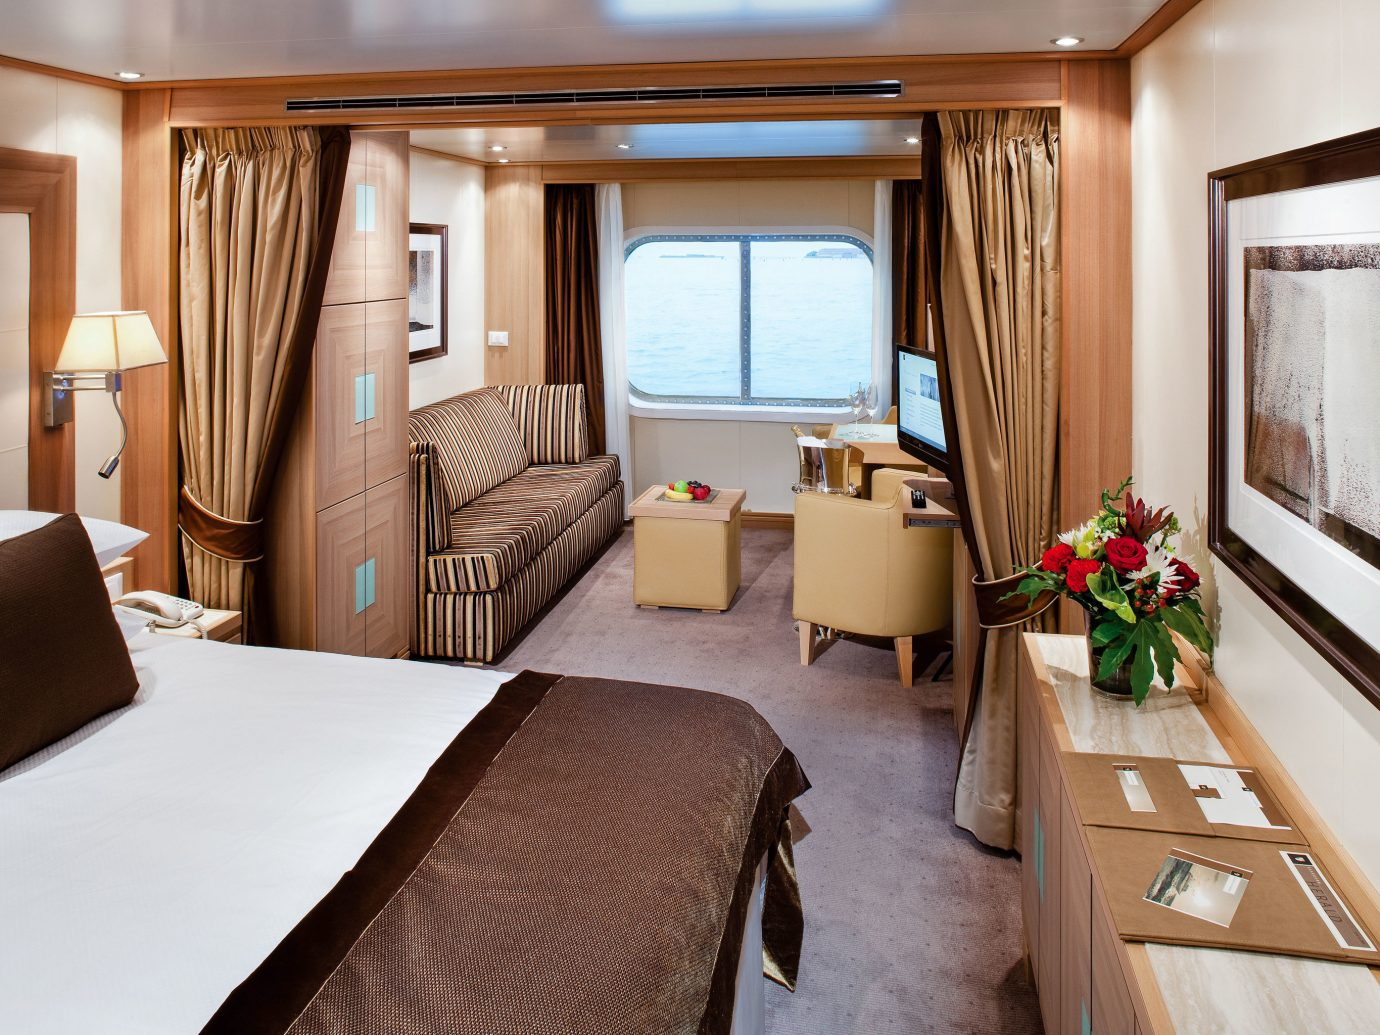 Cruise Travel Luxury Travel Trip Ideas indoor wall room floor window bed ceiling hotel Suite interior design Cabin furniture Bedroom decorated